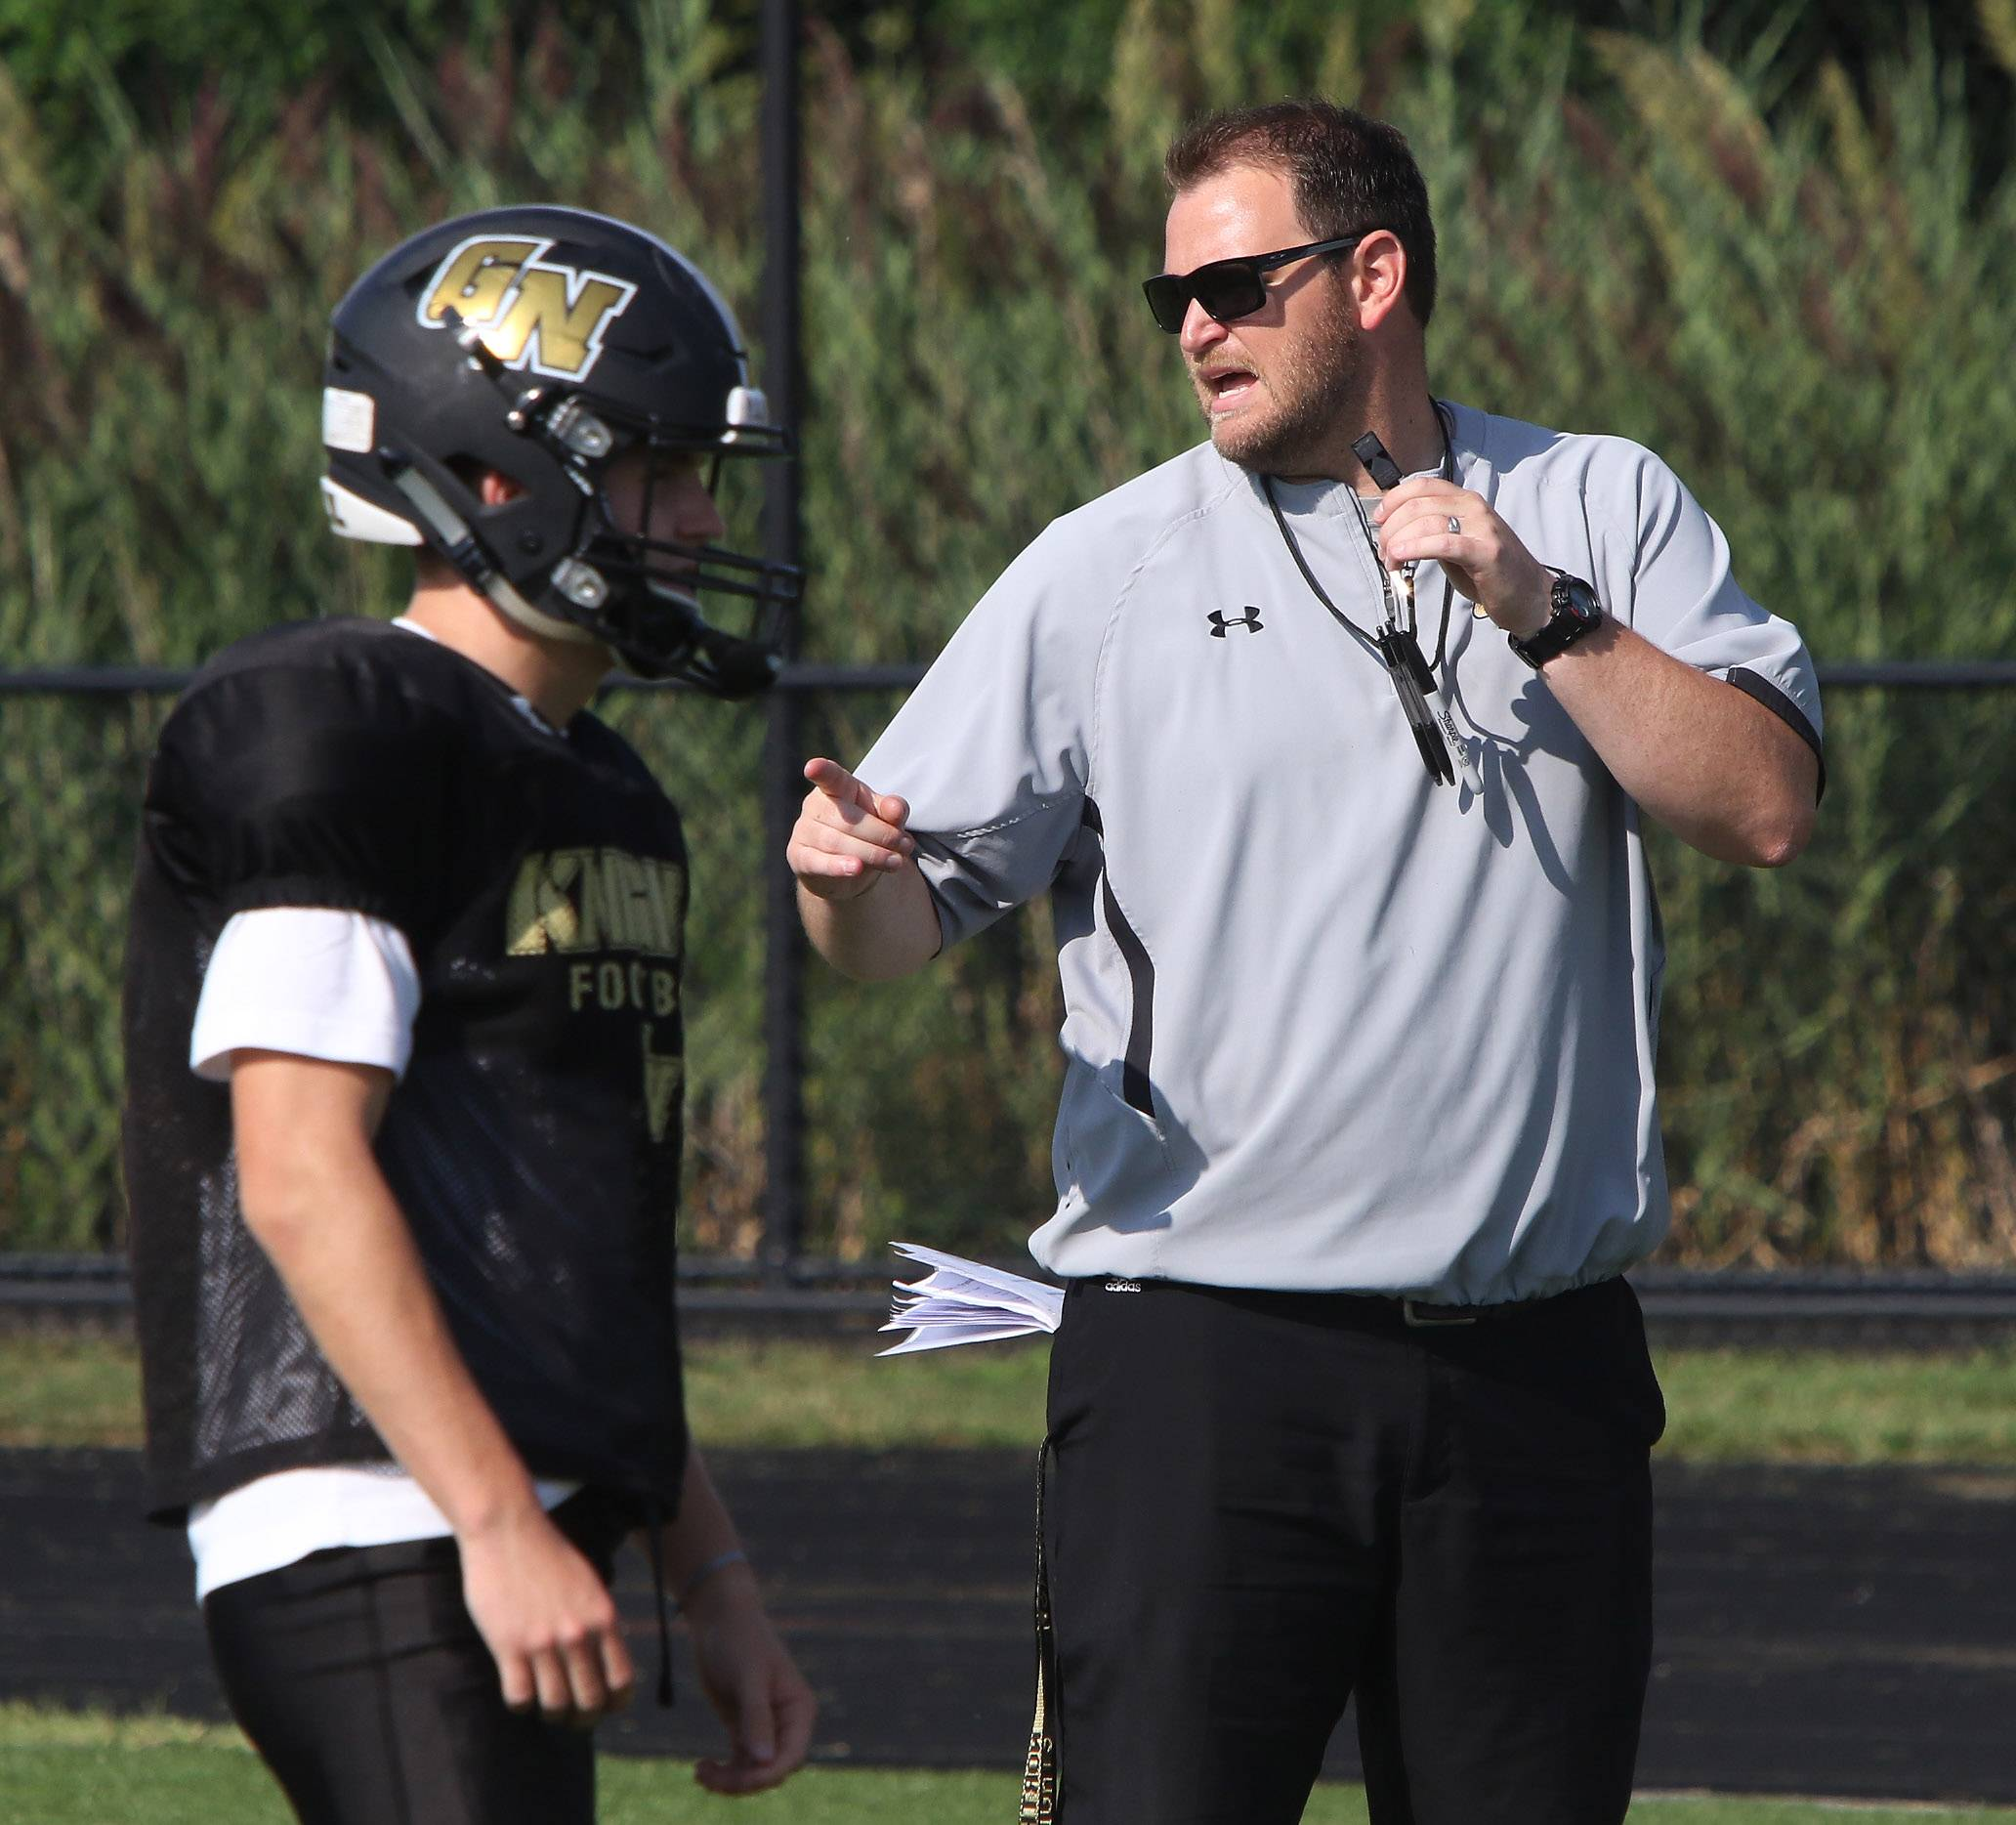 Grayslake North coach Sam Baker is taking a hands-on approach to Lake County football.